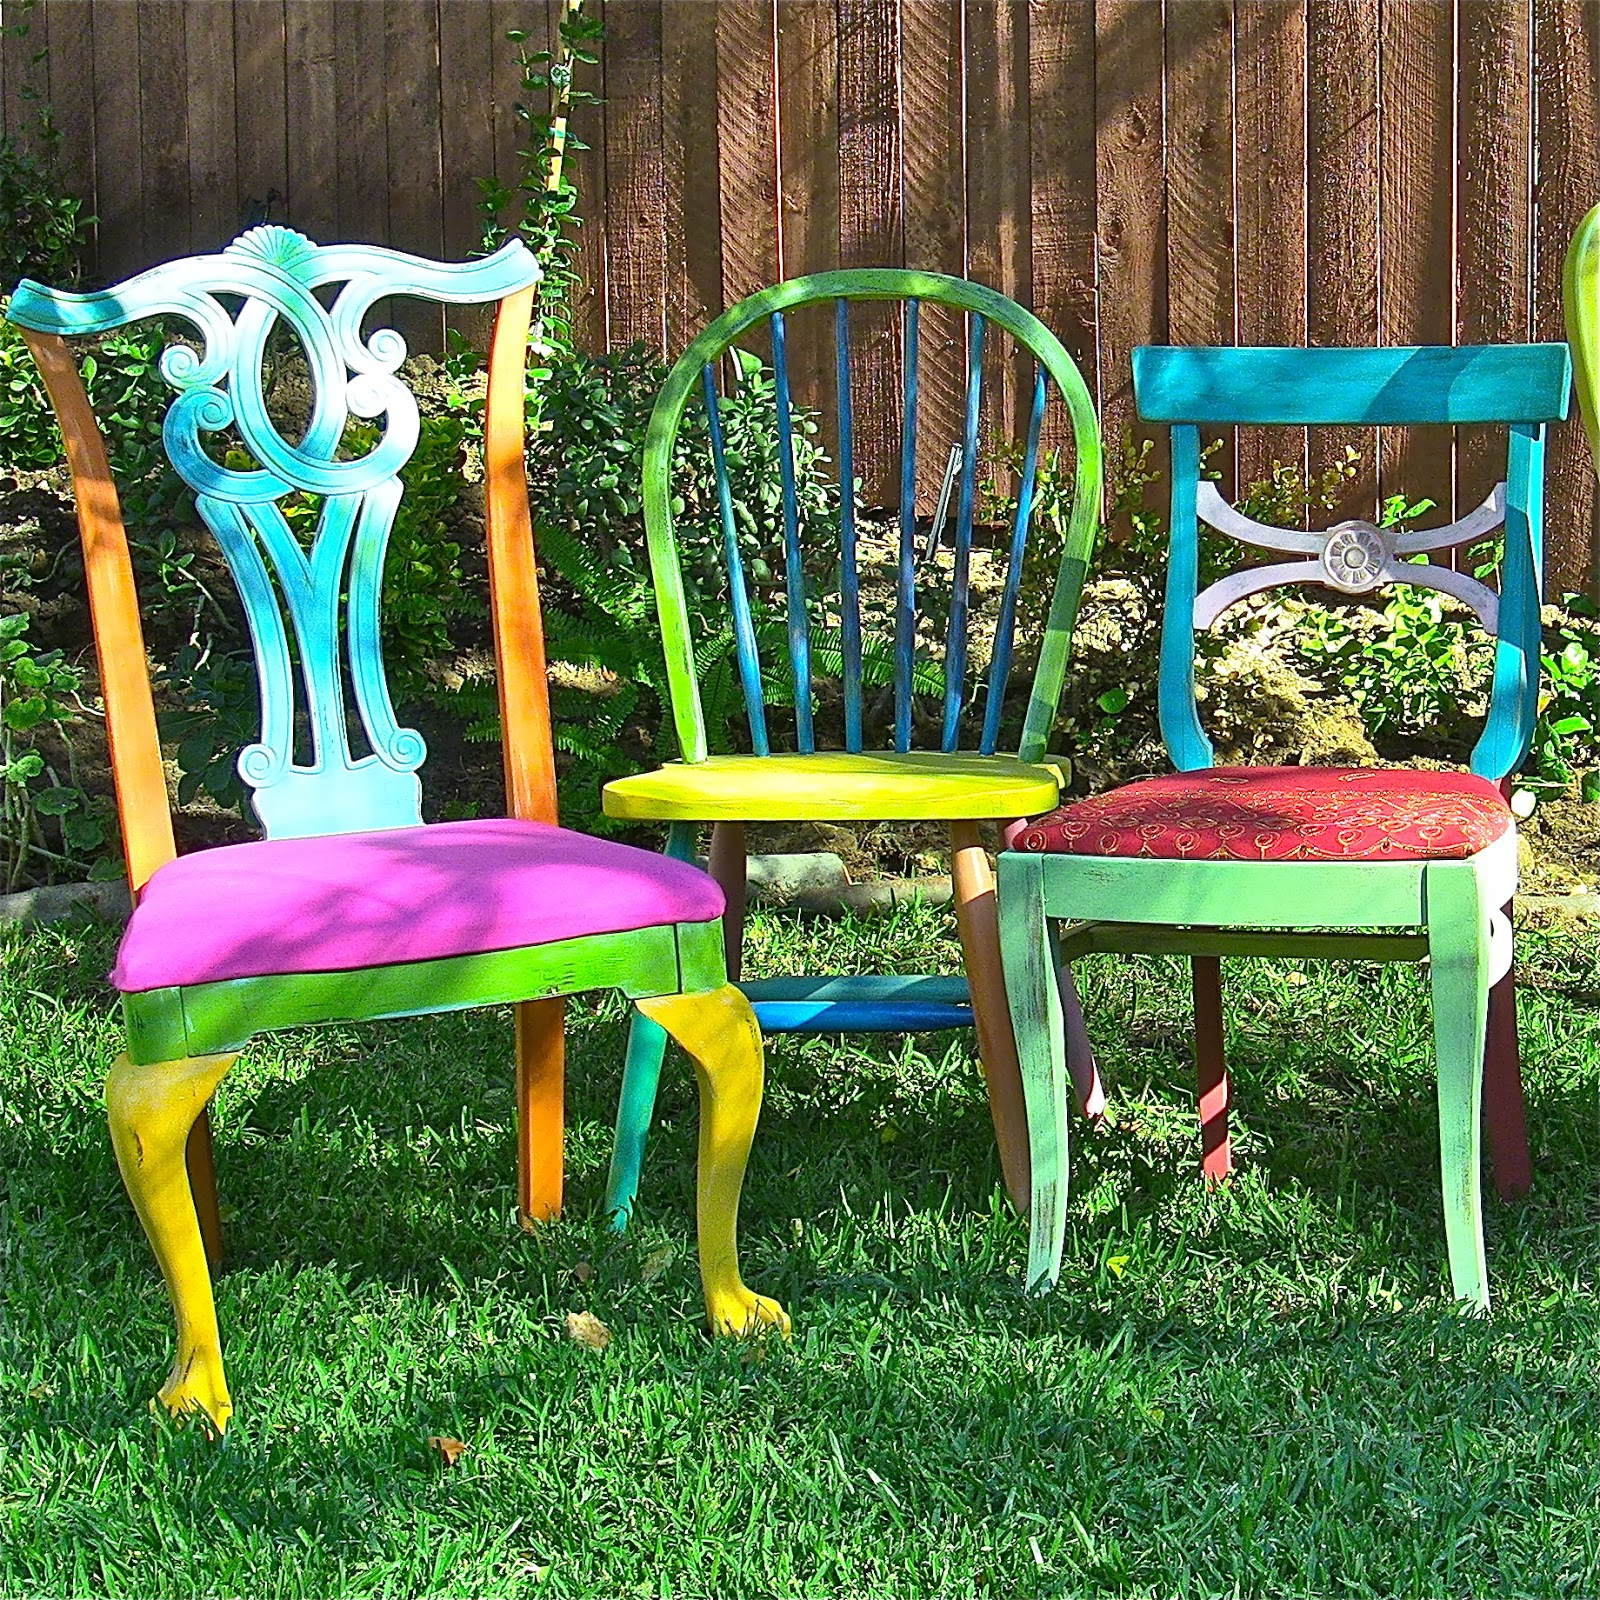 diy painted windsor chairs home goods furniture mark montano 5 boho thrift store